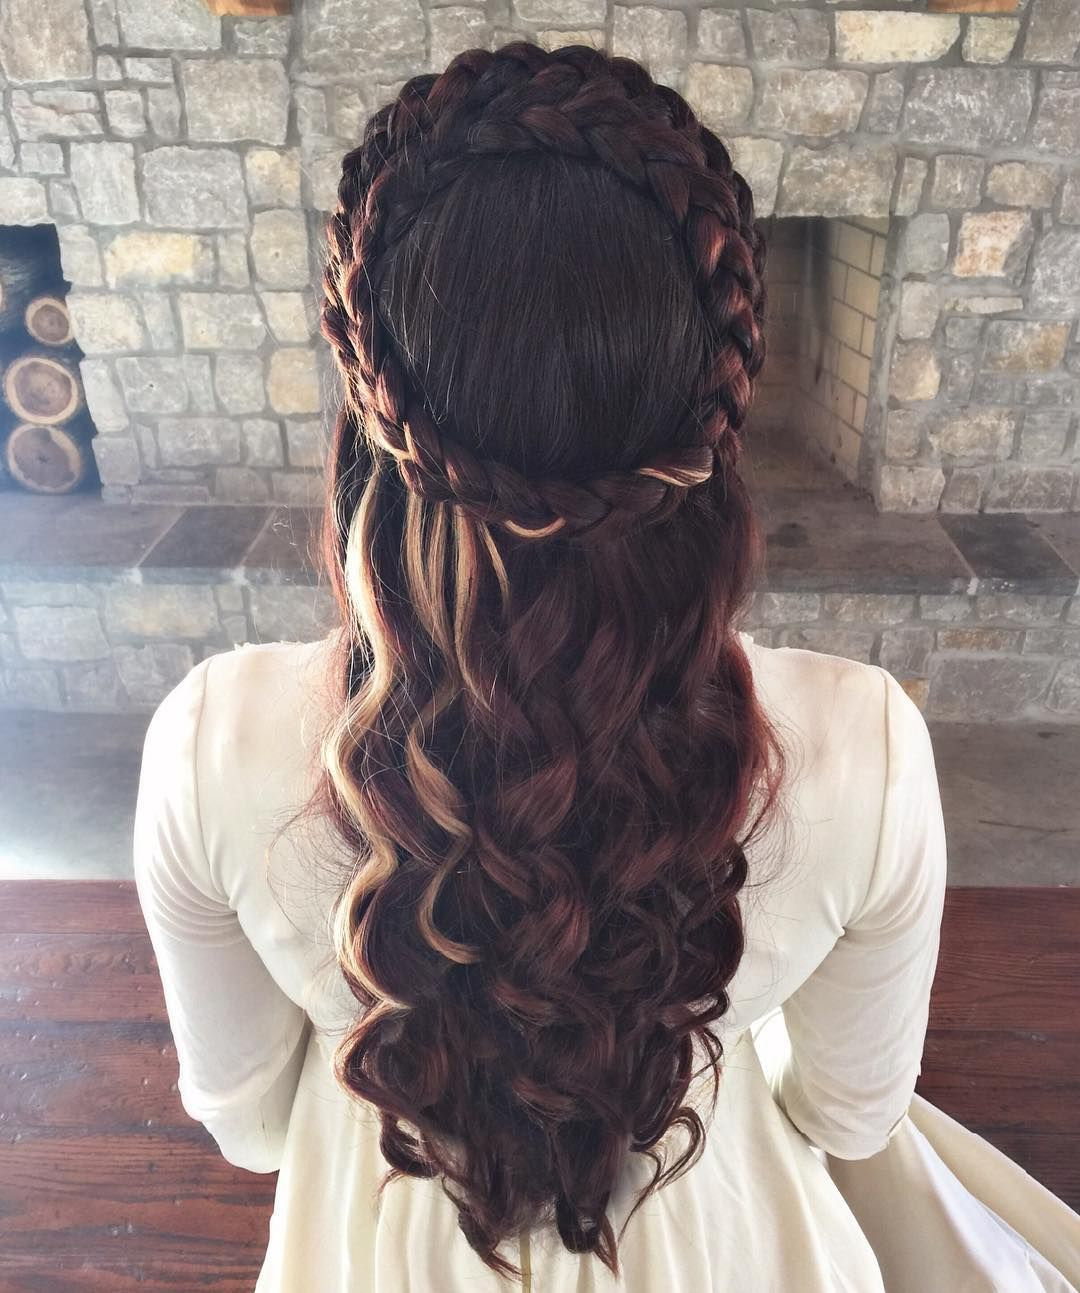 Pin By Haley Brunson On The White Clothes Renaissance Hairstyles Medieval Hairstyles Long Hair Styles